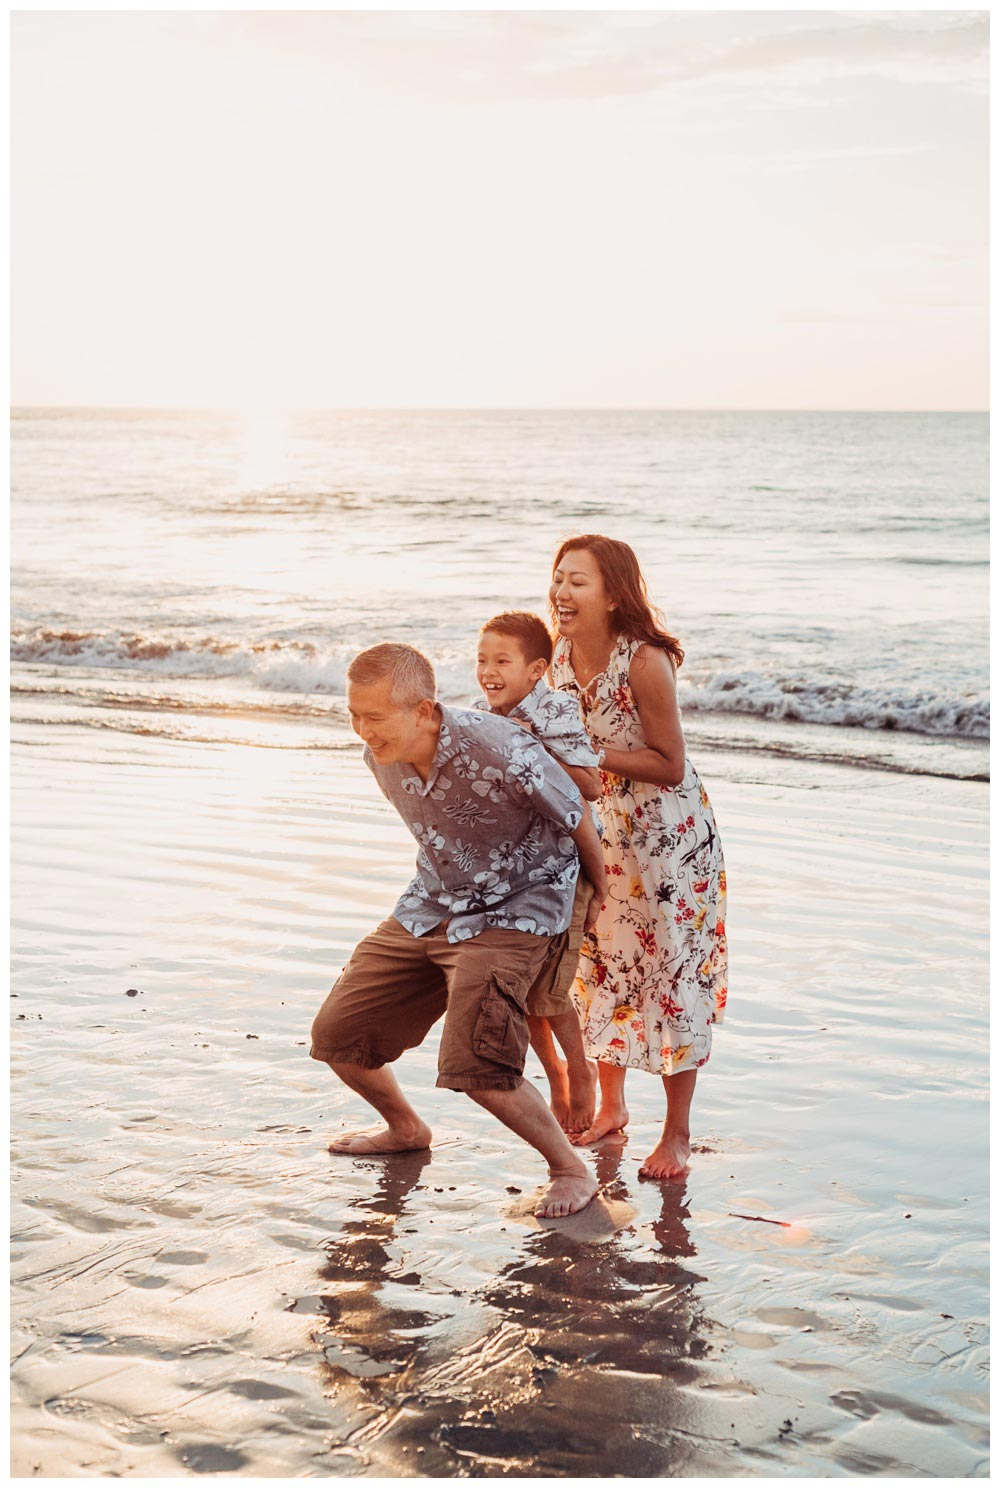 Family playing on the beach during family photos in Playa Flamingo Costa Rica. Photographed by Kristen M. Brown, Samba to the Sea Photography.